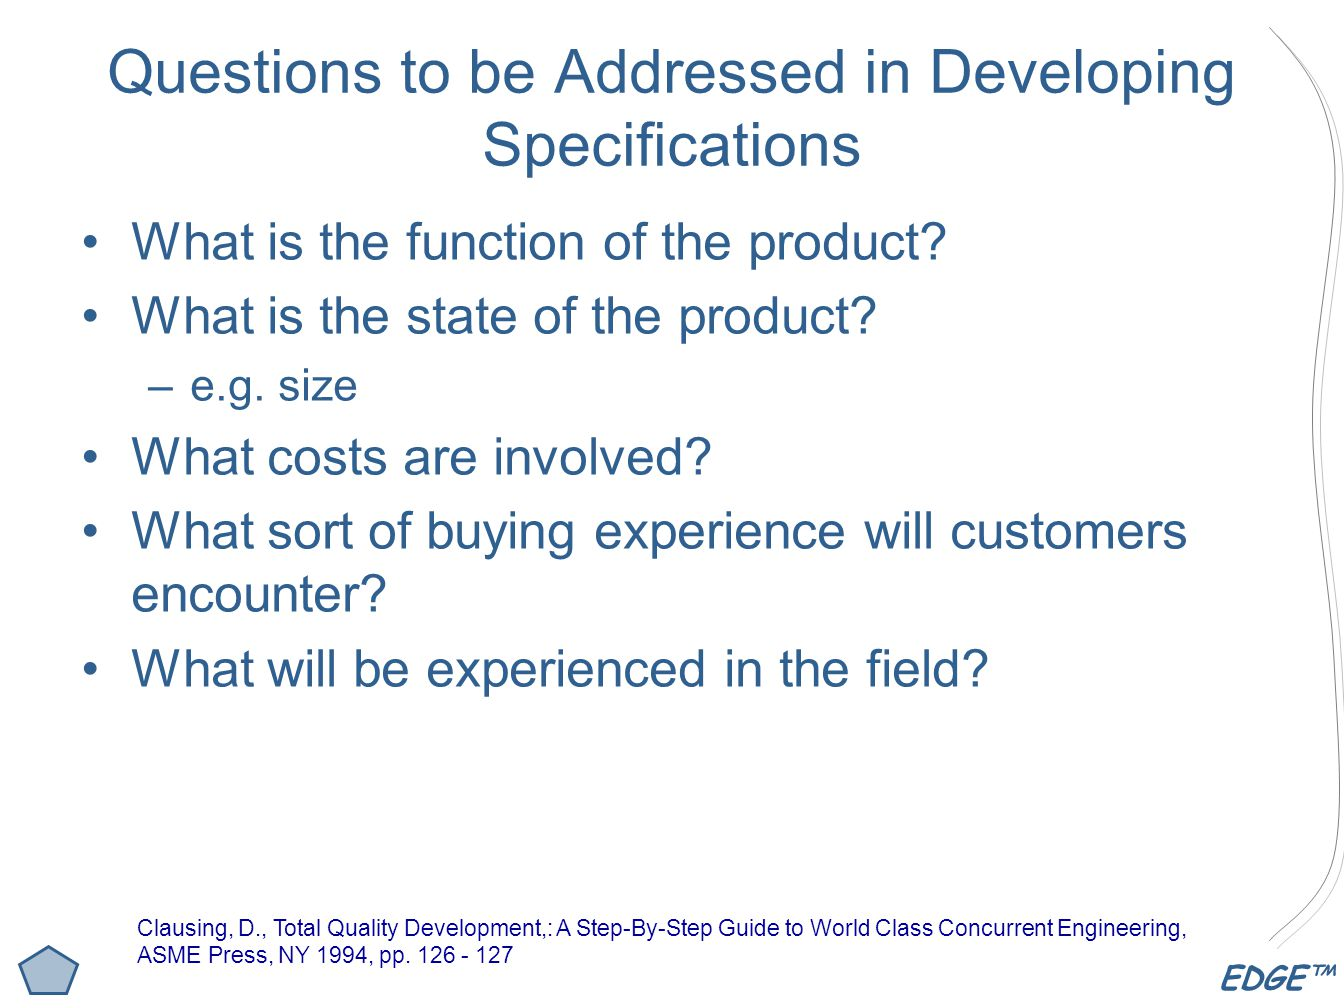 Questions to be Addressed in Developing Specifications